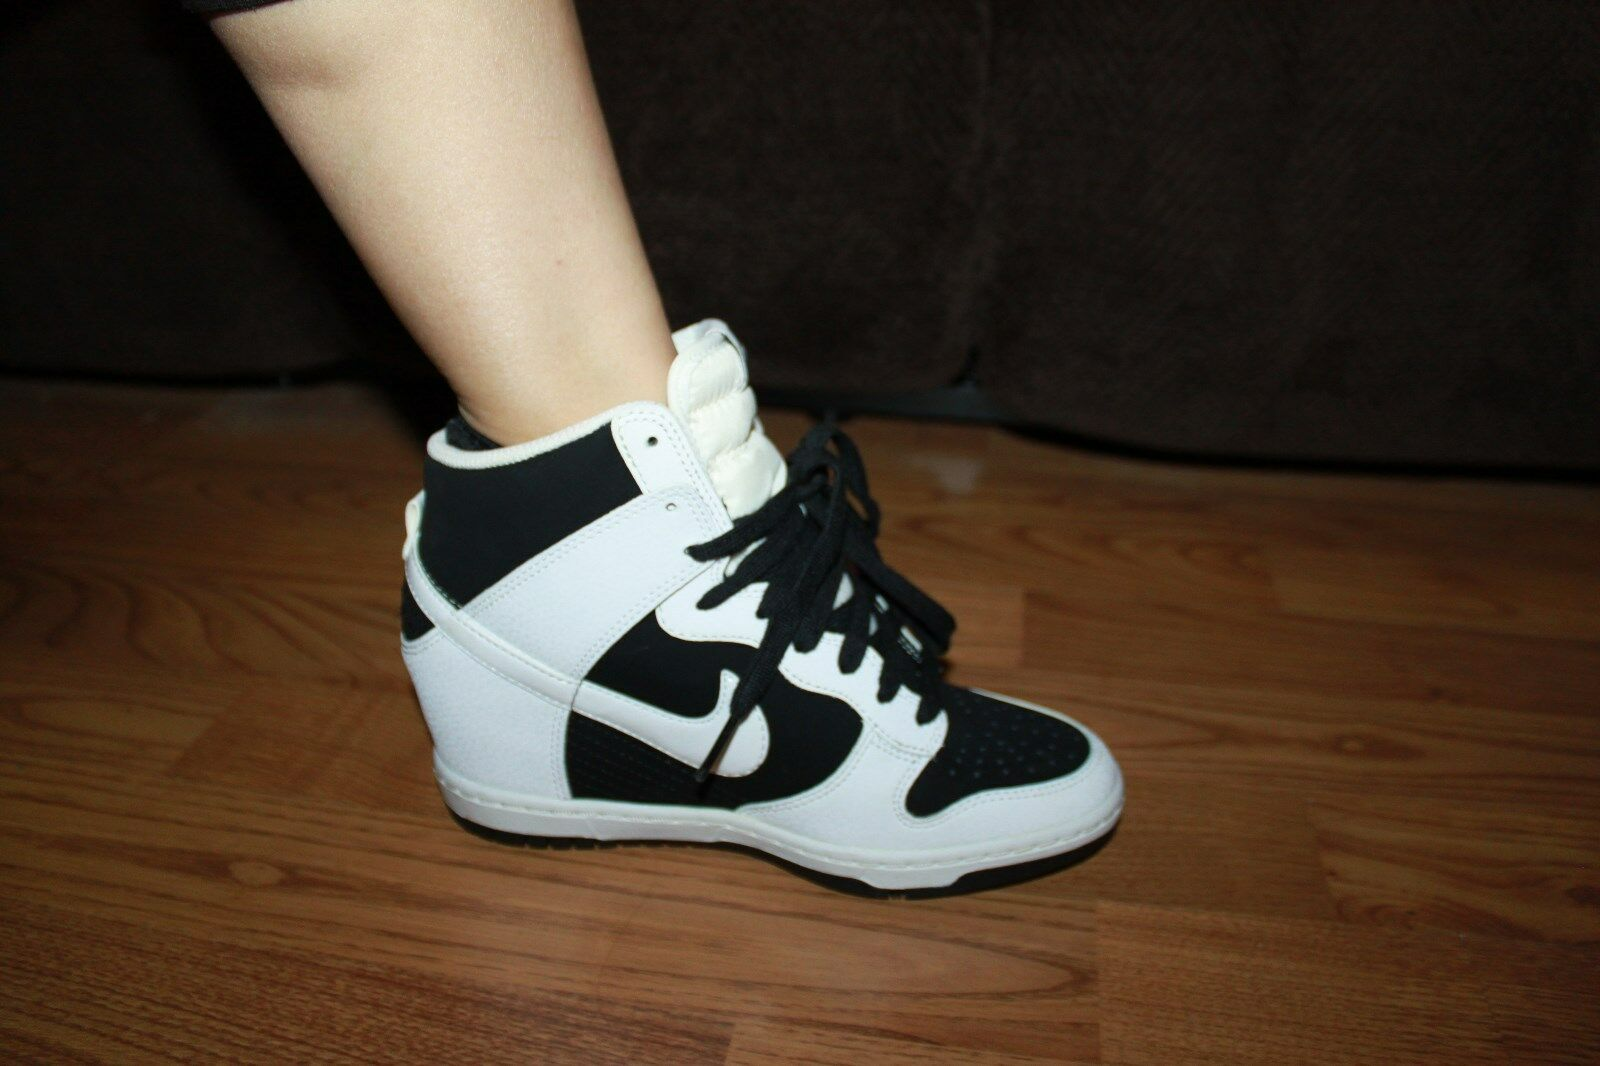 NIKE SKY HI BLACK WHITE WEDGE SNEAKERS SHOES WOMEN 5.5